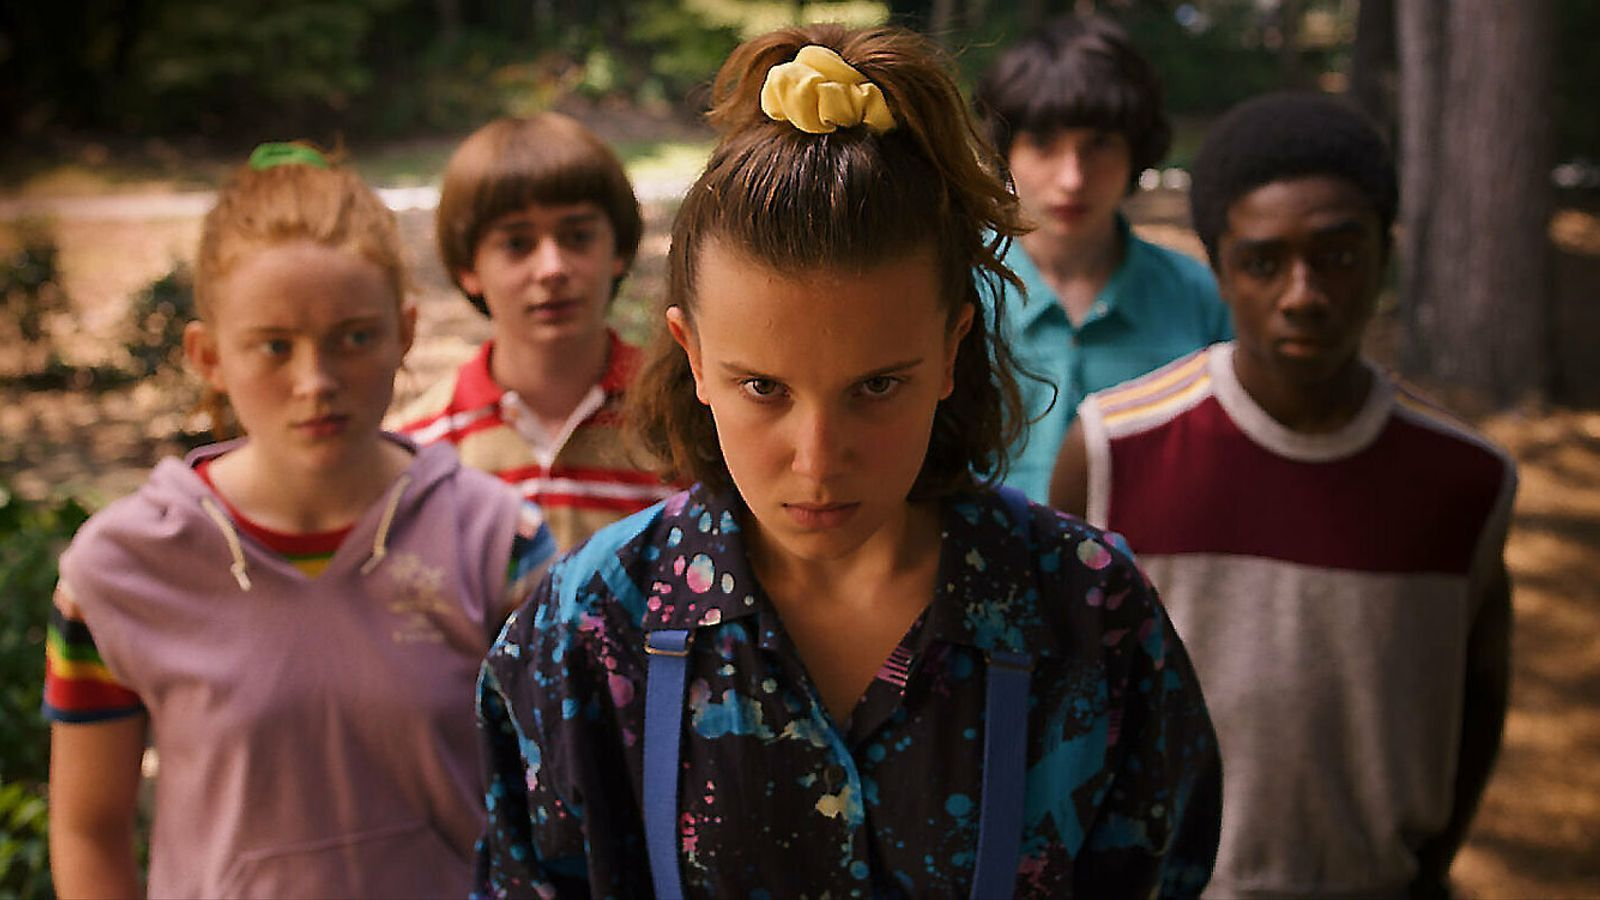 'Stranger things' marca un rècord per a Netflix